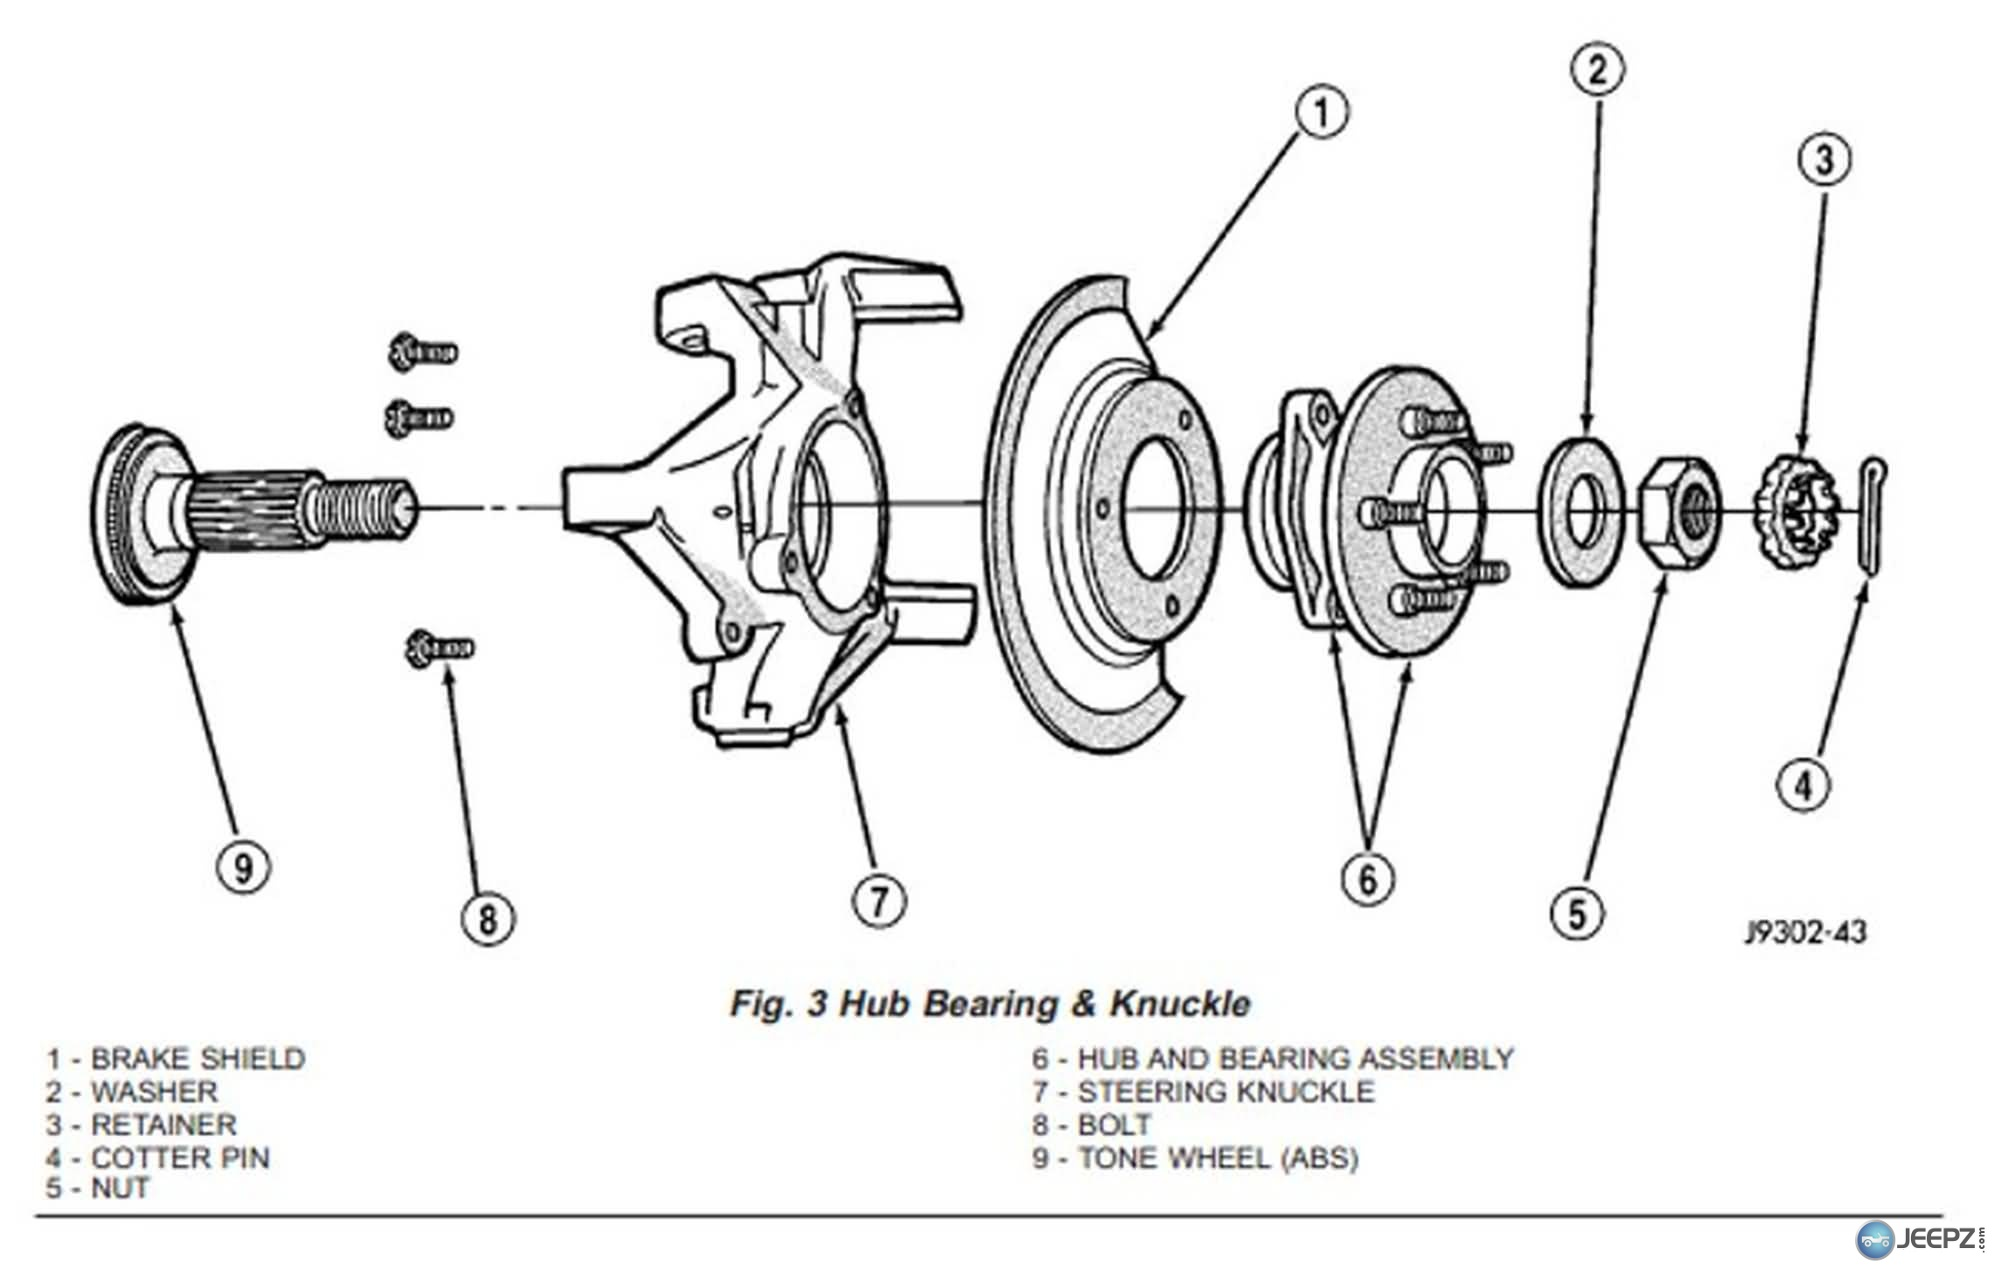 Wrangler Tj Wheel Hub Bearing Assembly Replacement